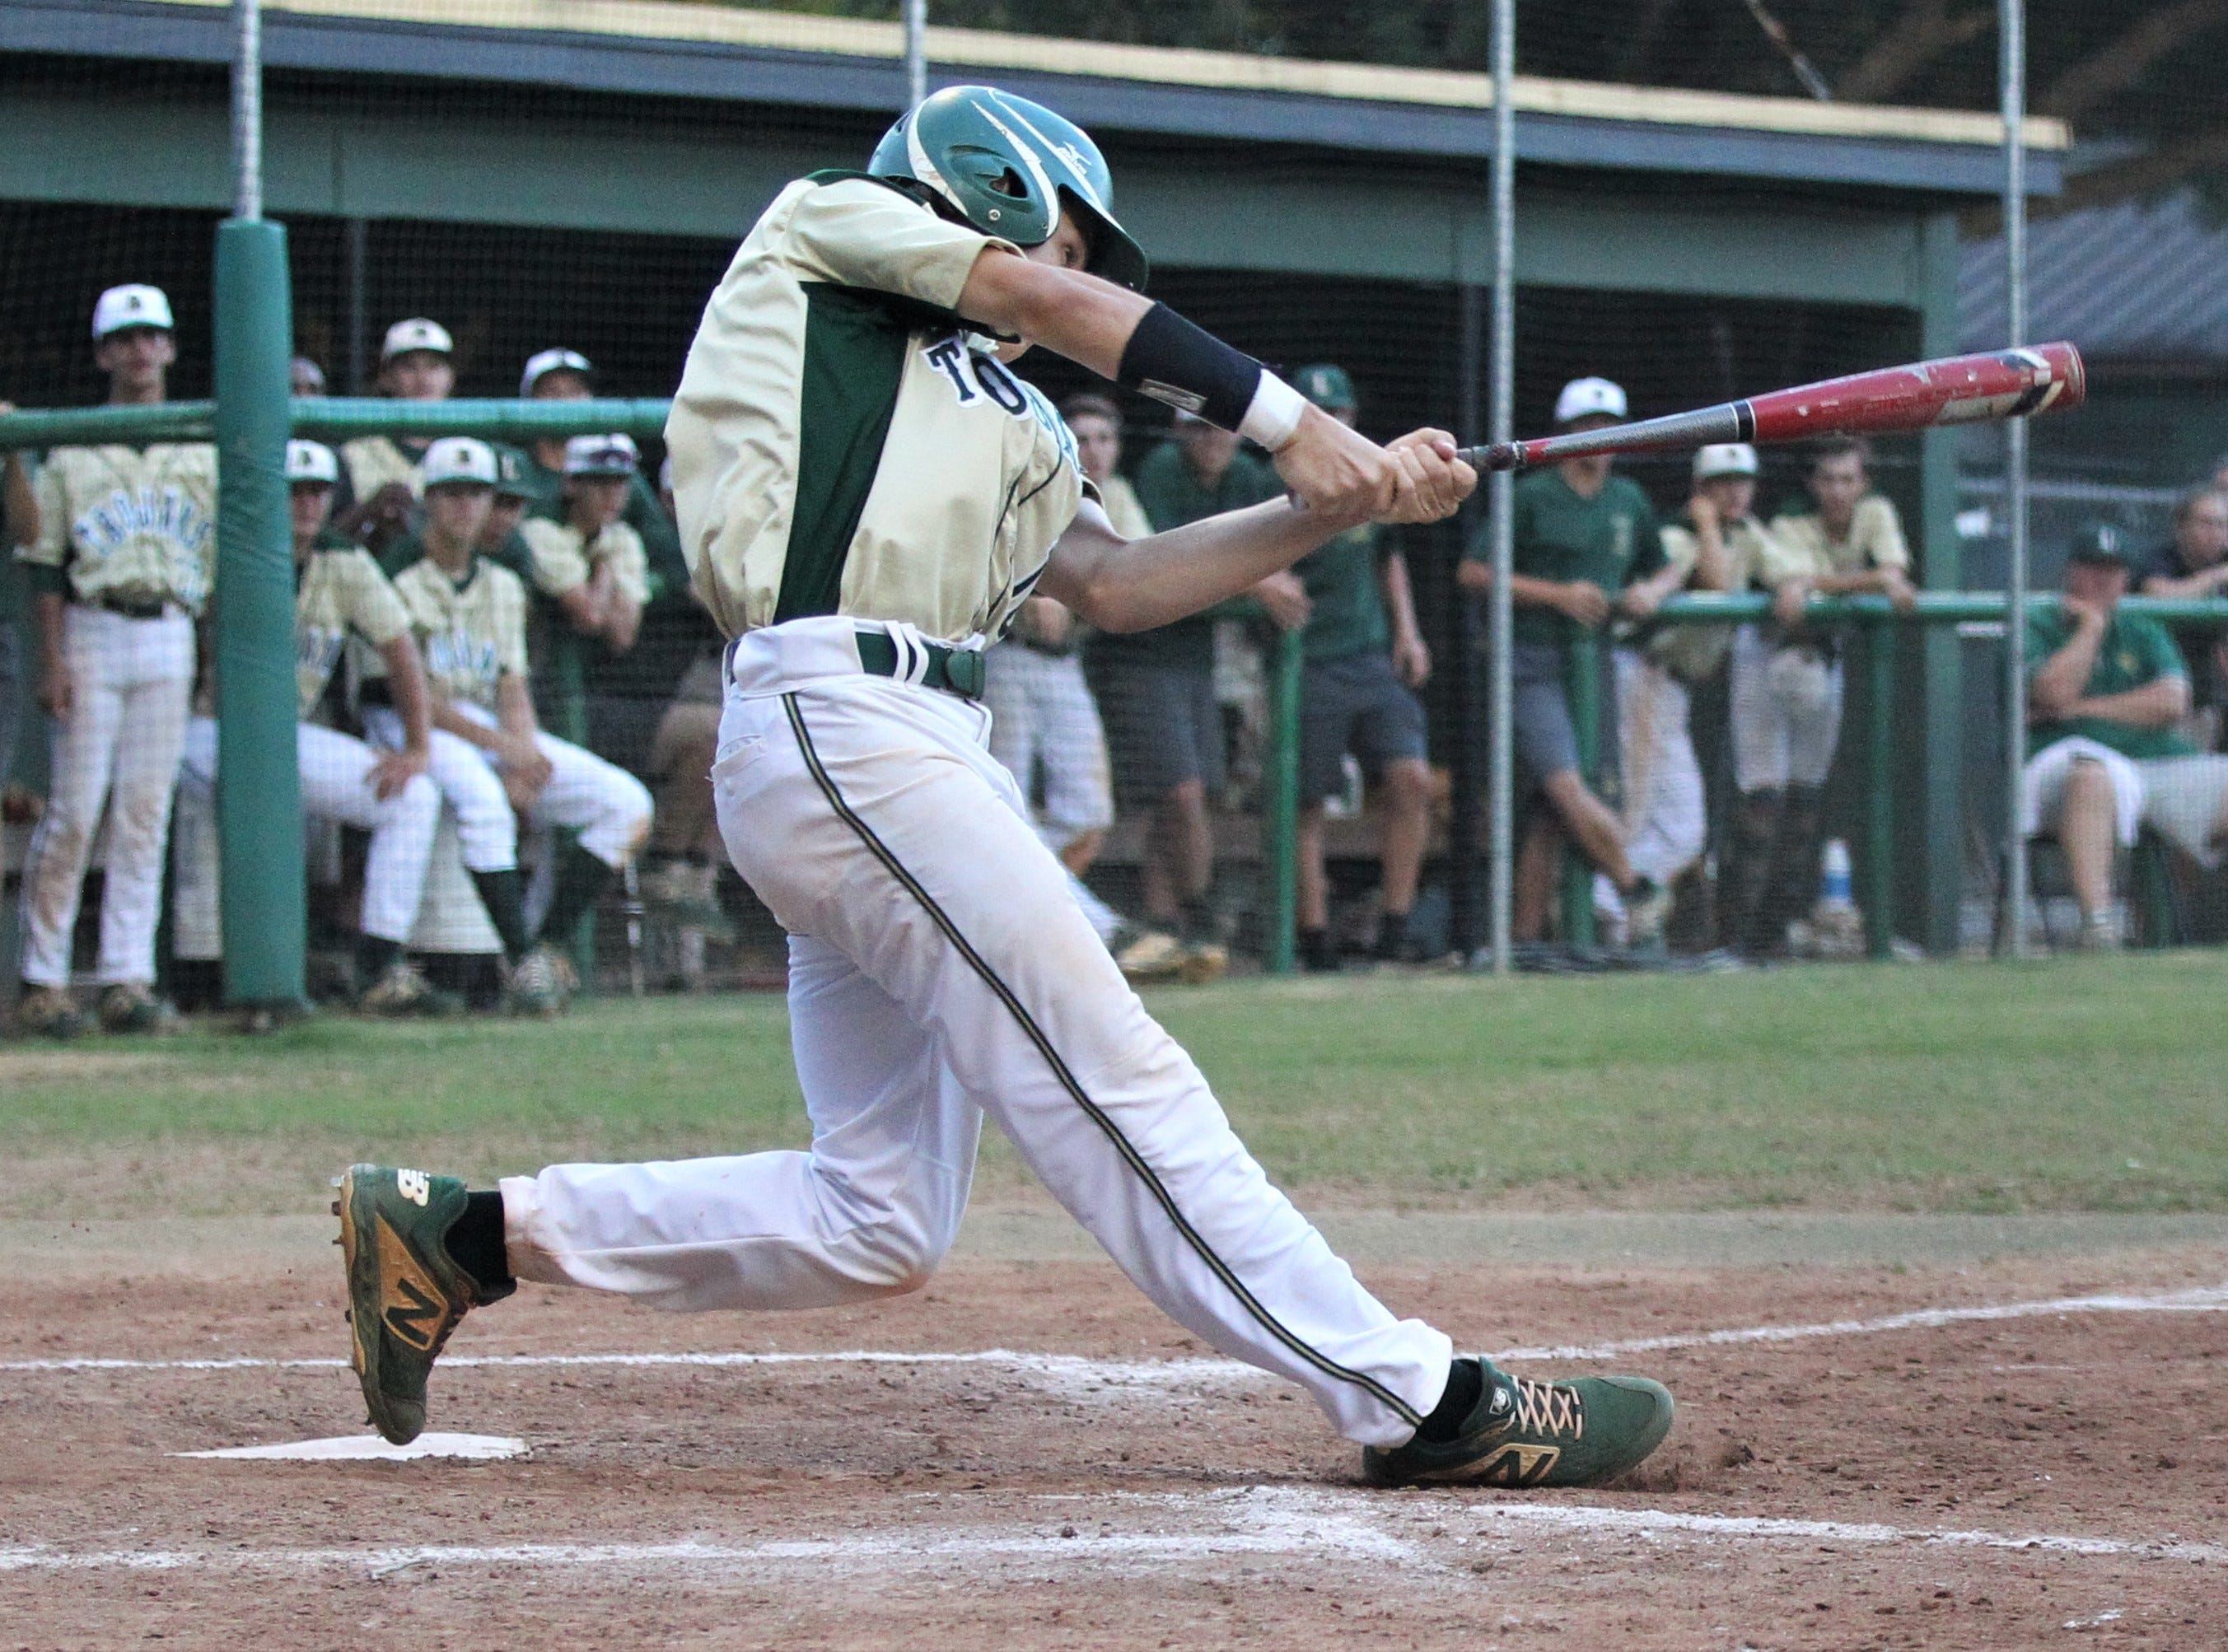 Lincoln senior Shawn Snyder bats as Lincoln baseball beat Chiles 5-4  in 10 innings during a District 2-8A championship game on Thursday, May 9, 2019.